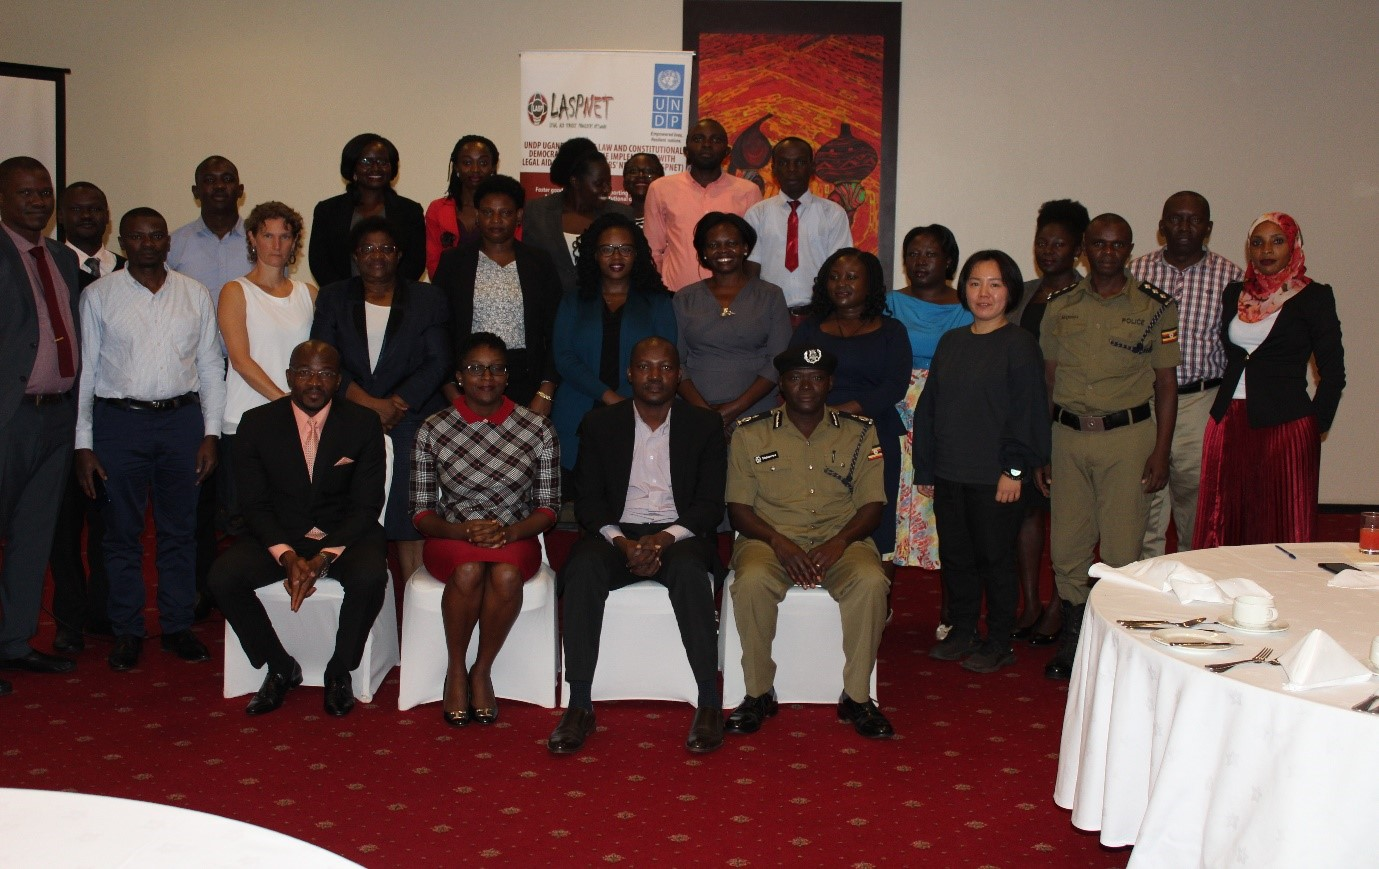 A group photo of the participants; seated extreme left is Mr. Ramsey Bryant (UNHCR); Ms. Sandra Oryema (LASPNET Board Chairperson); Associate Prof. Christopher Mbazira (Lead Consultant) and ACP Anatoli Muleterwa (Uganda Police Force).